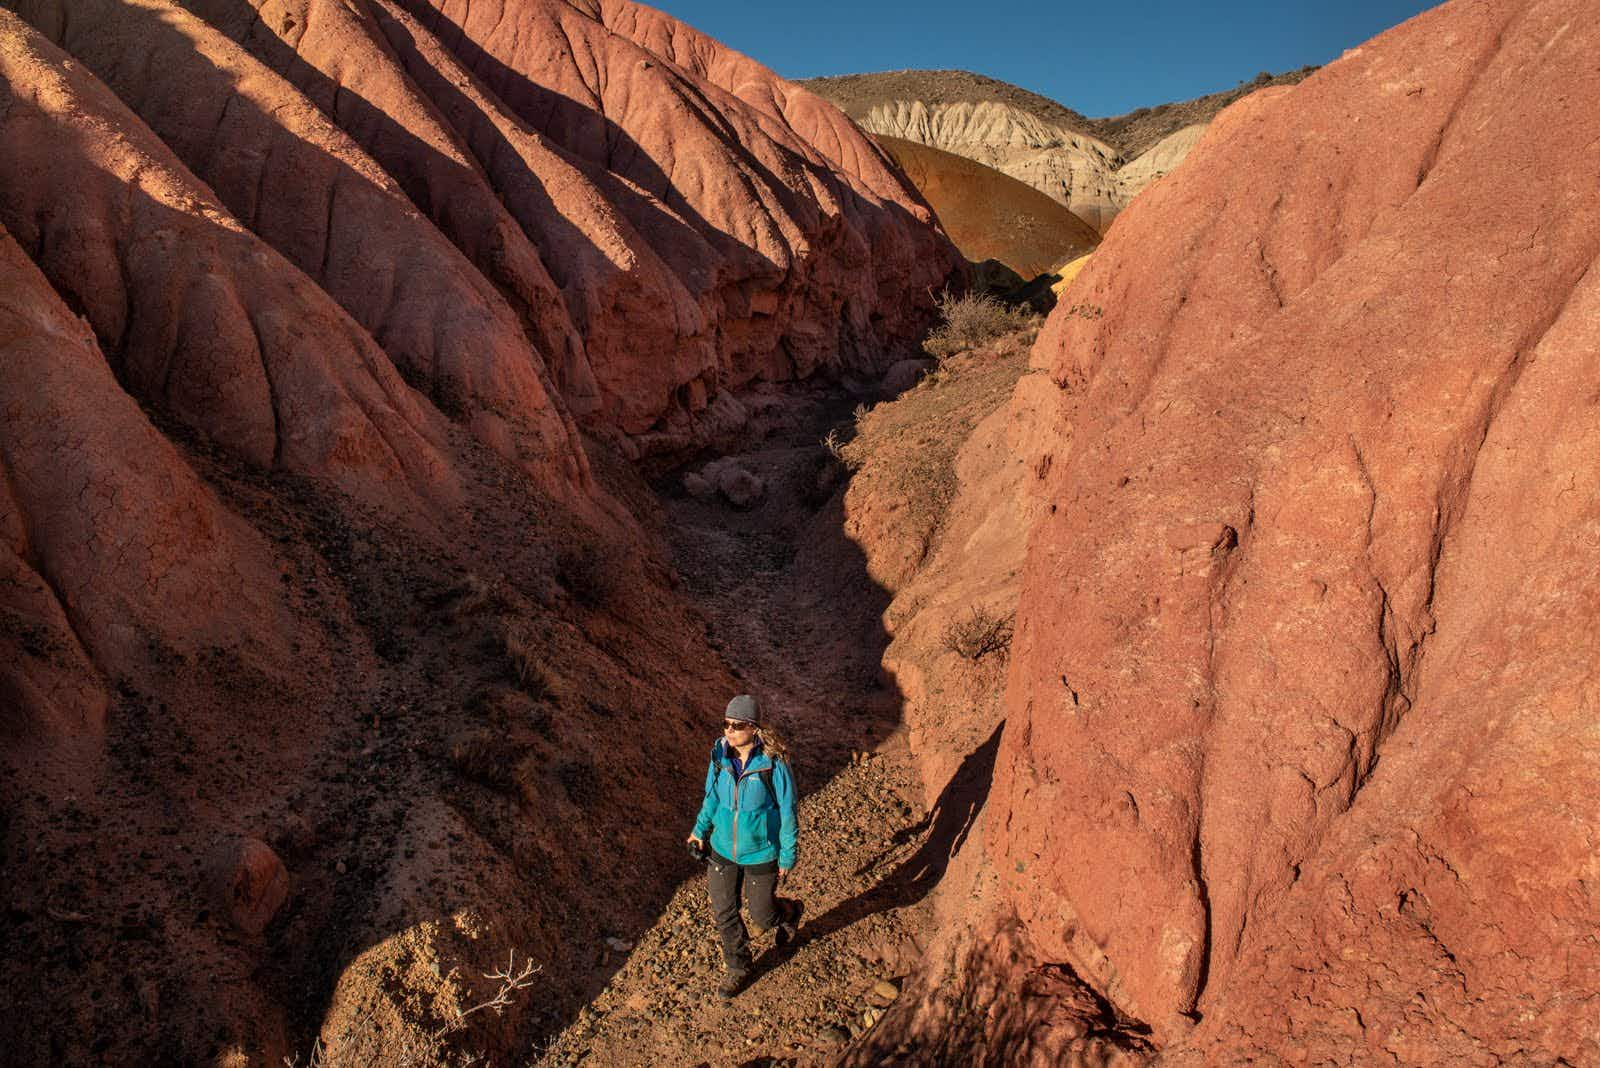 A hiker surrounded by a short canyon of red rock walls in Argentina's Patagonia National Park